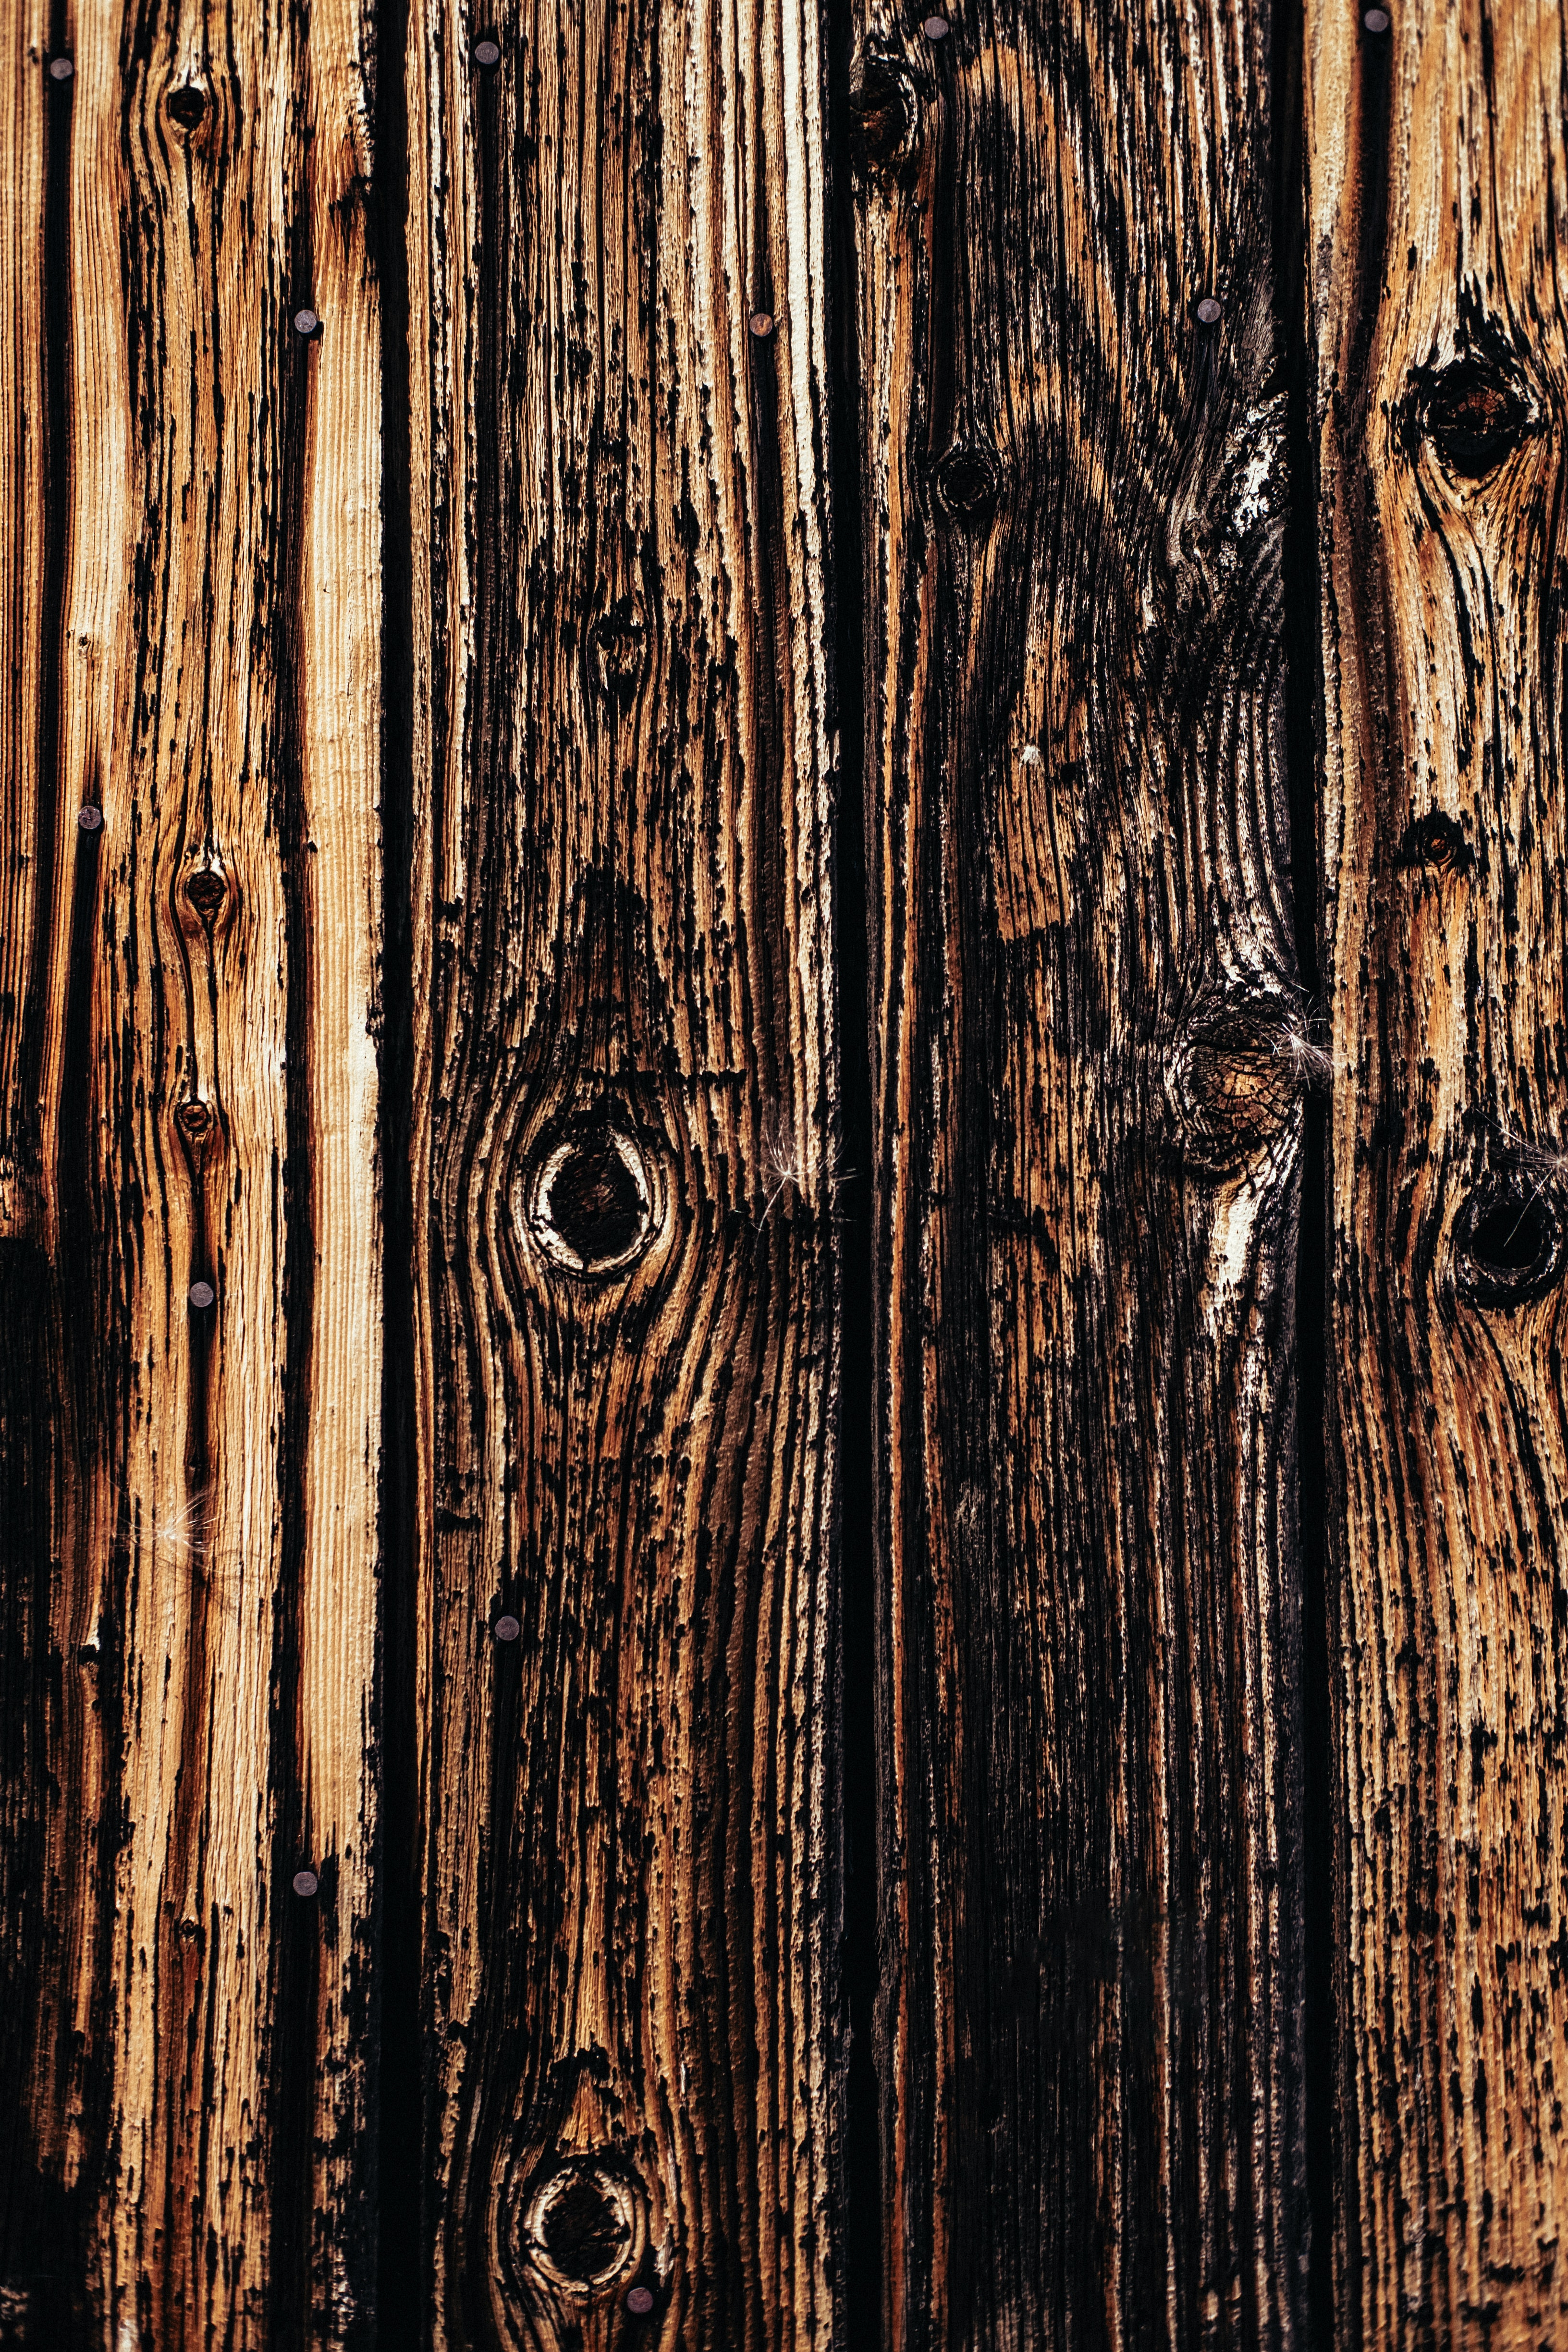 80939 download wallpaper Textures, Texture, Planks, Board, Wood, Wooden, Stripes, Streaks, Lines screensavers and pictures for free